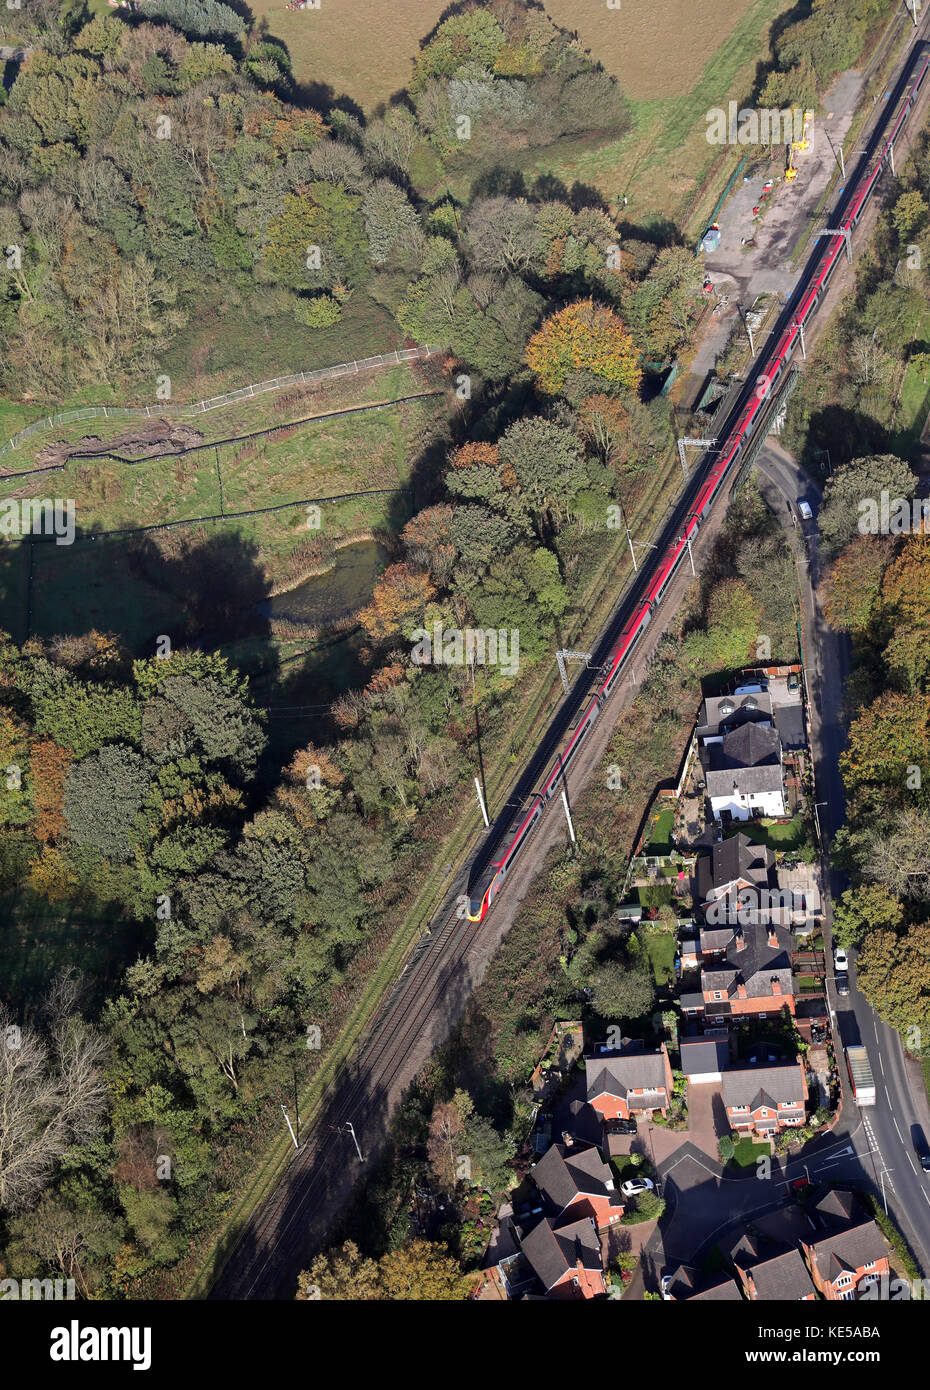 aerial view of a Virgin Trains InterCity train on the West Coast line, England, UK - Stock Image